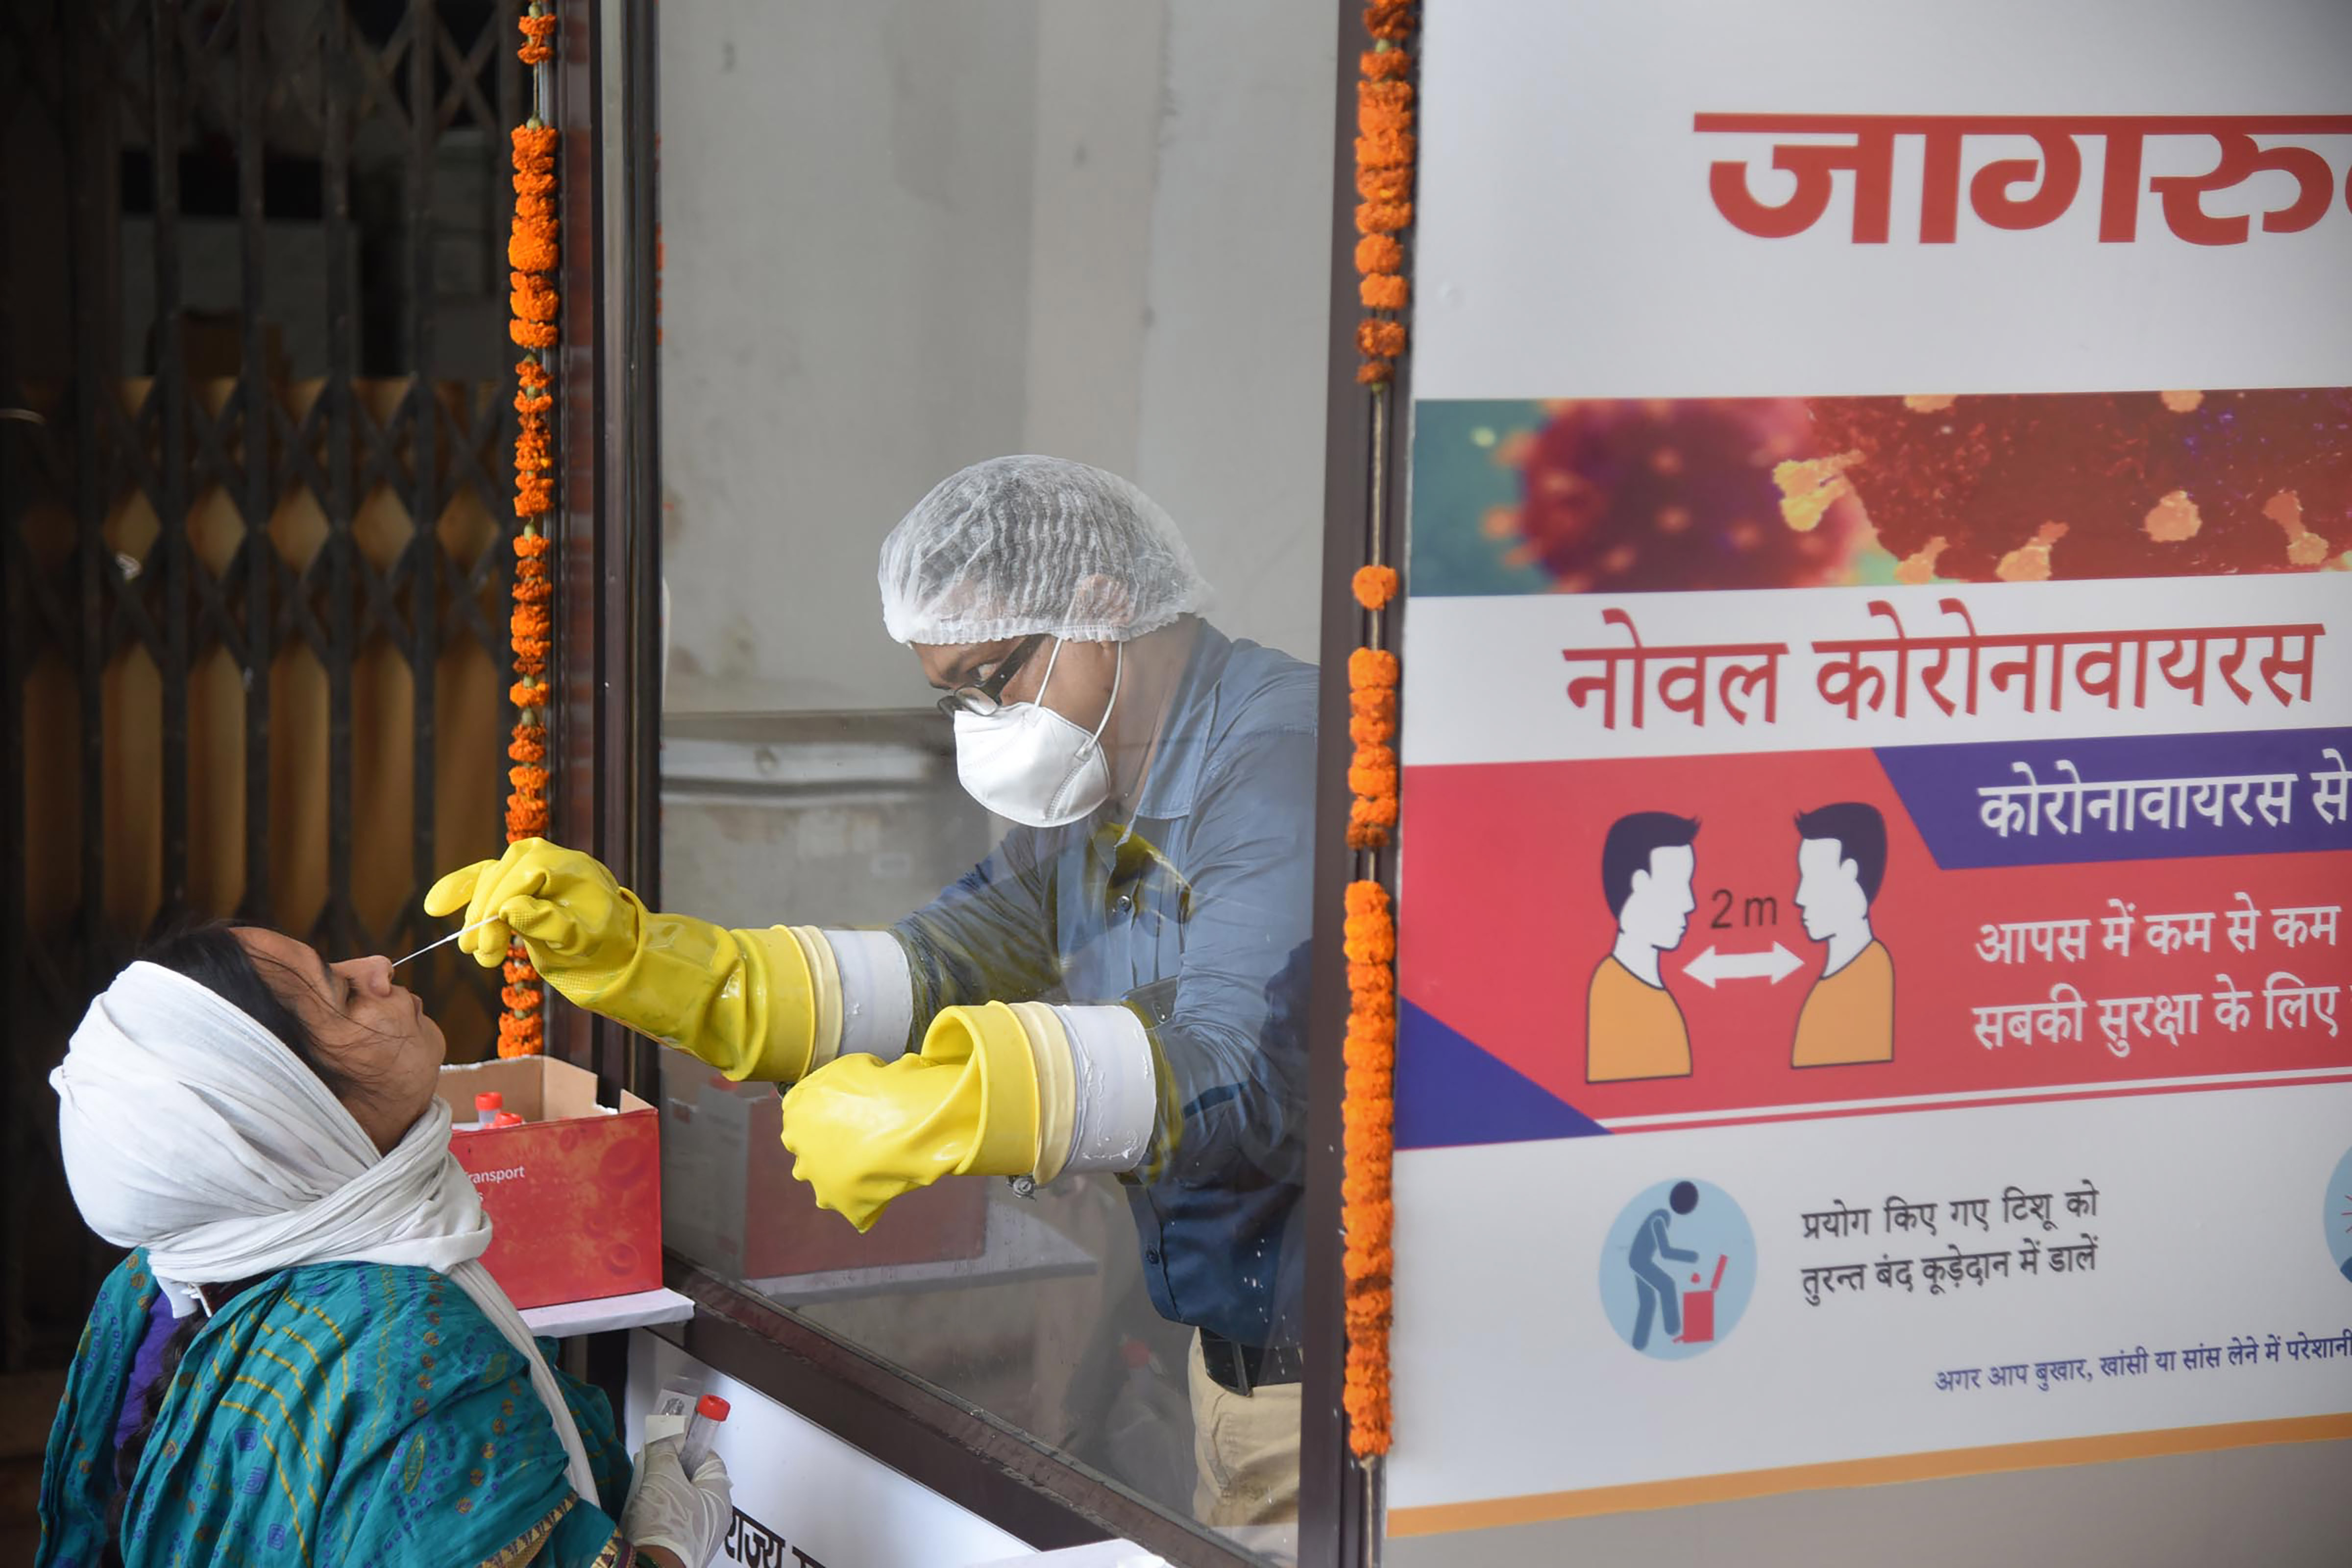 Patna: A medic collects a sample from a woman for COVID-19 test at a collection centre, during the total lockdown, in Patna, Friday, July 17, 2020. (PTI Photo)(PTI17-07-2020_000109B)